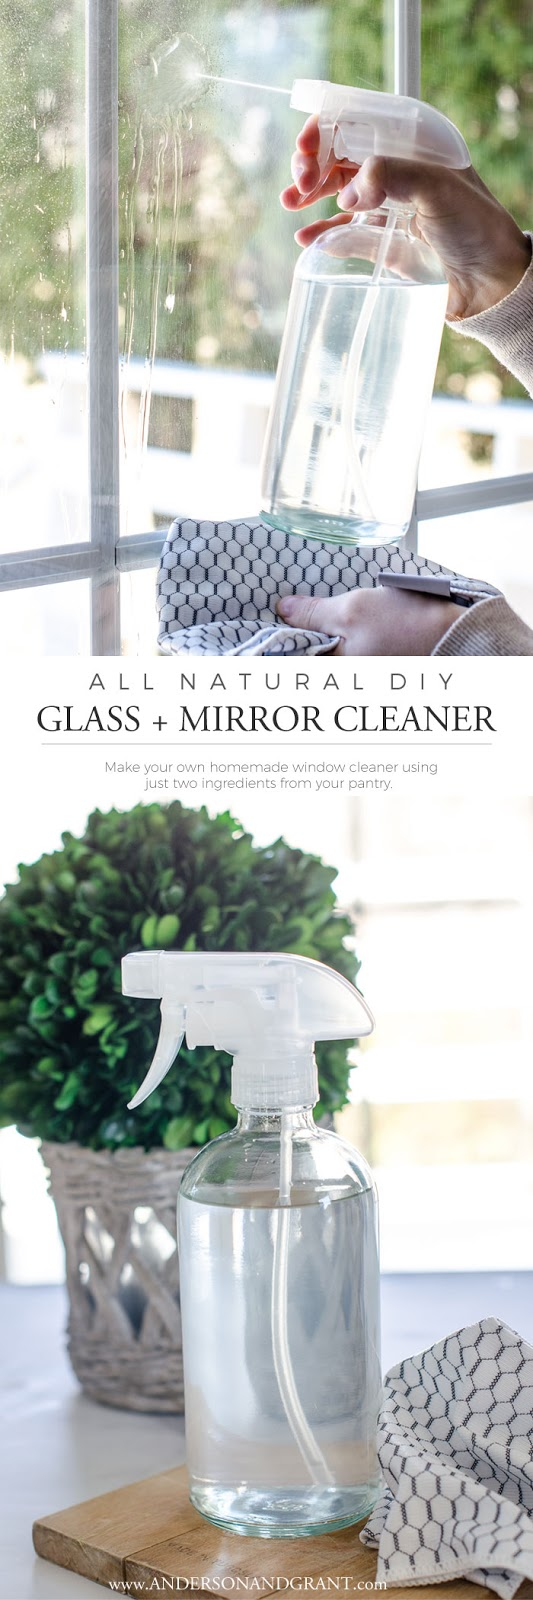 Safe and natural homemade cleaner for your windows.  Get the recipe at www.andersonandgrant.com #DIYcleaner #homemadecleaner #andersonandgrant